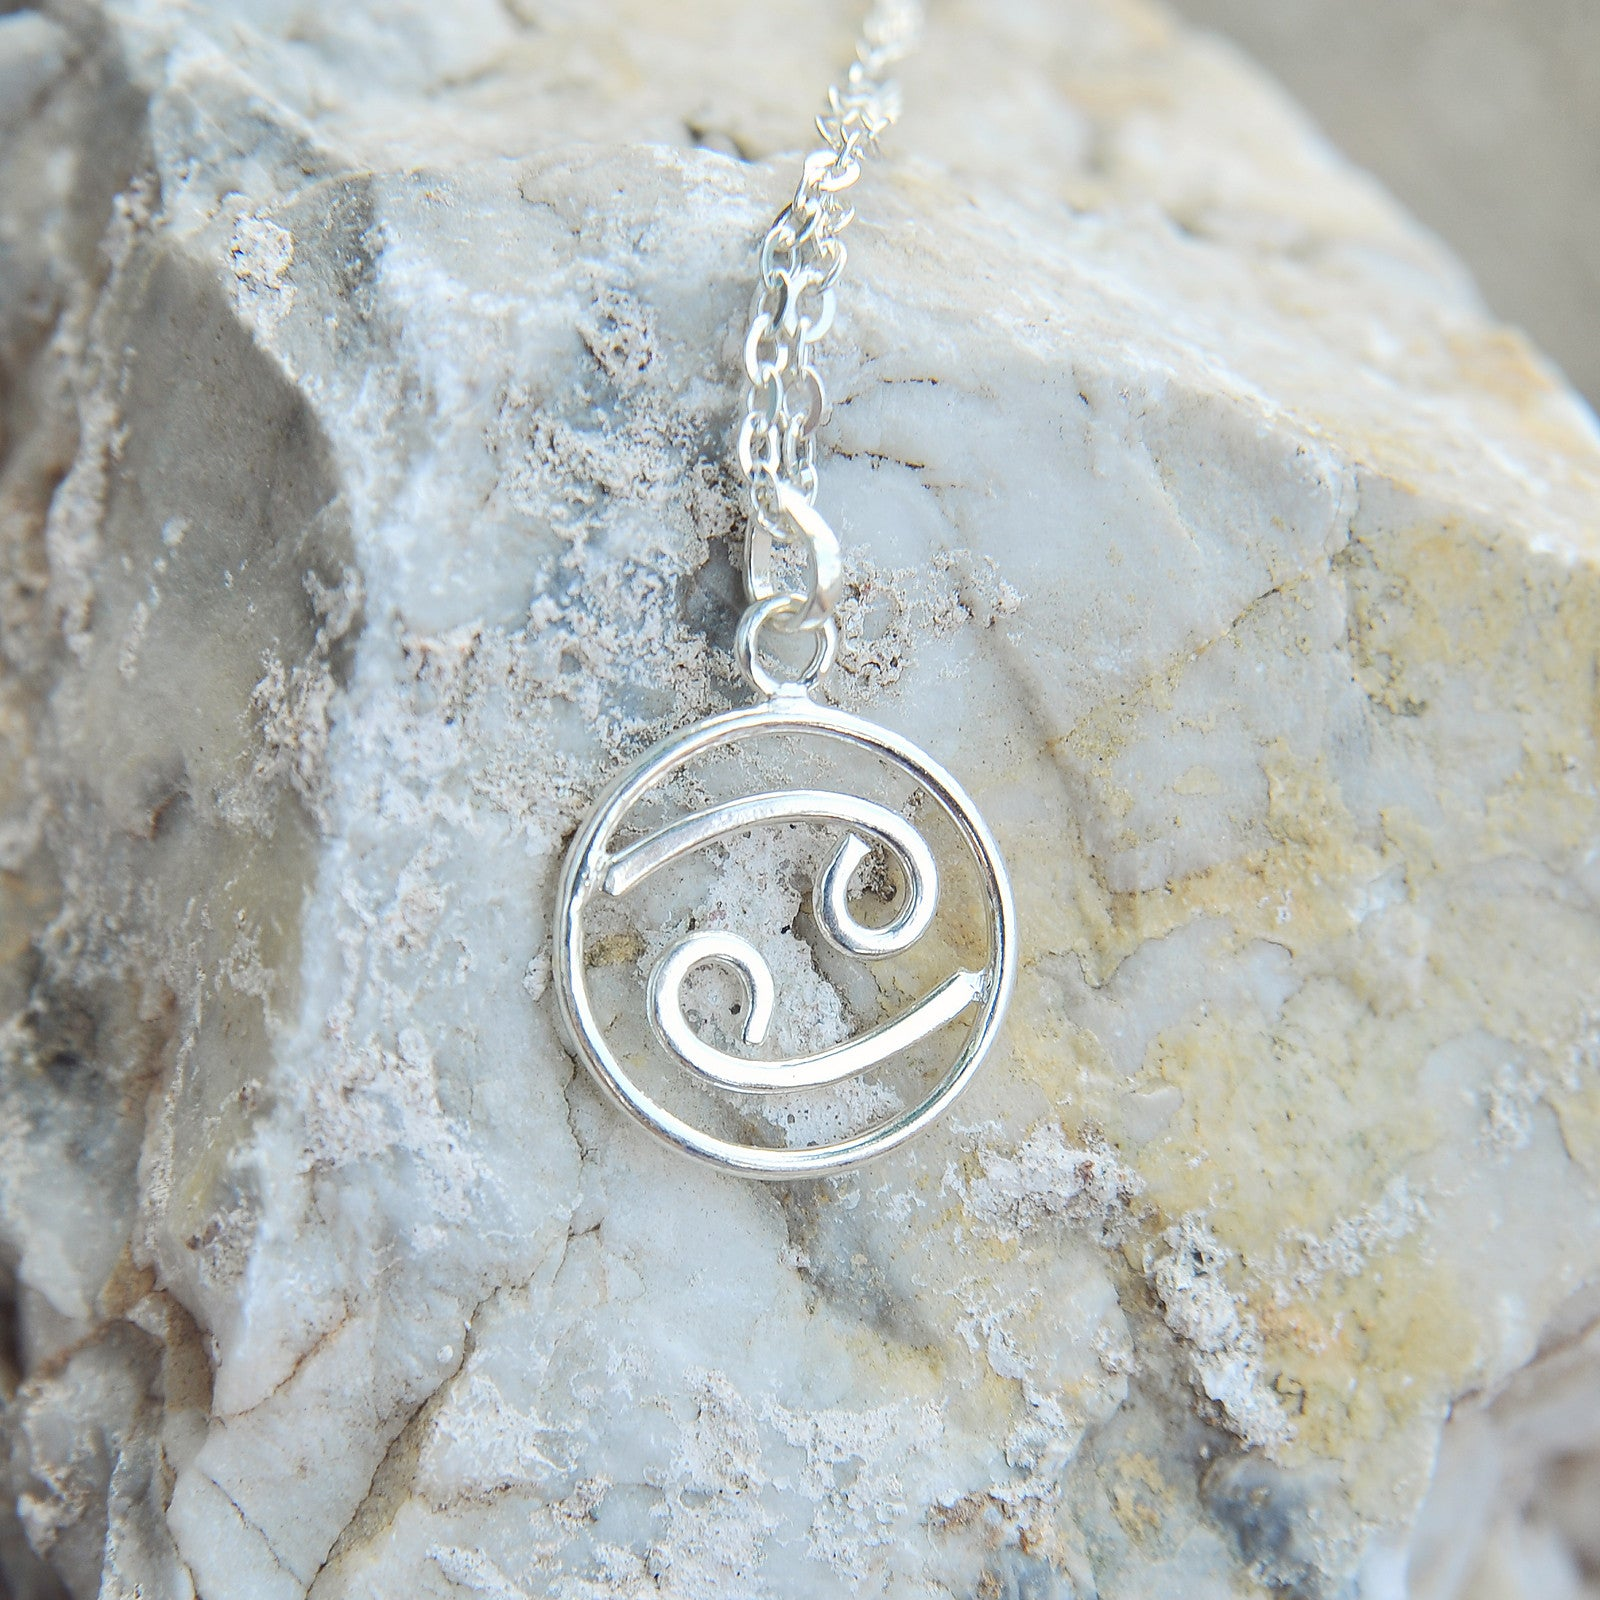 Cancer Horoscope Sign Sterling Silver pendant necklace